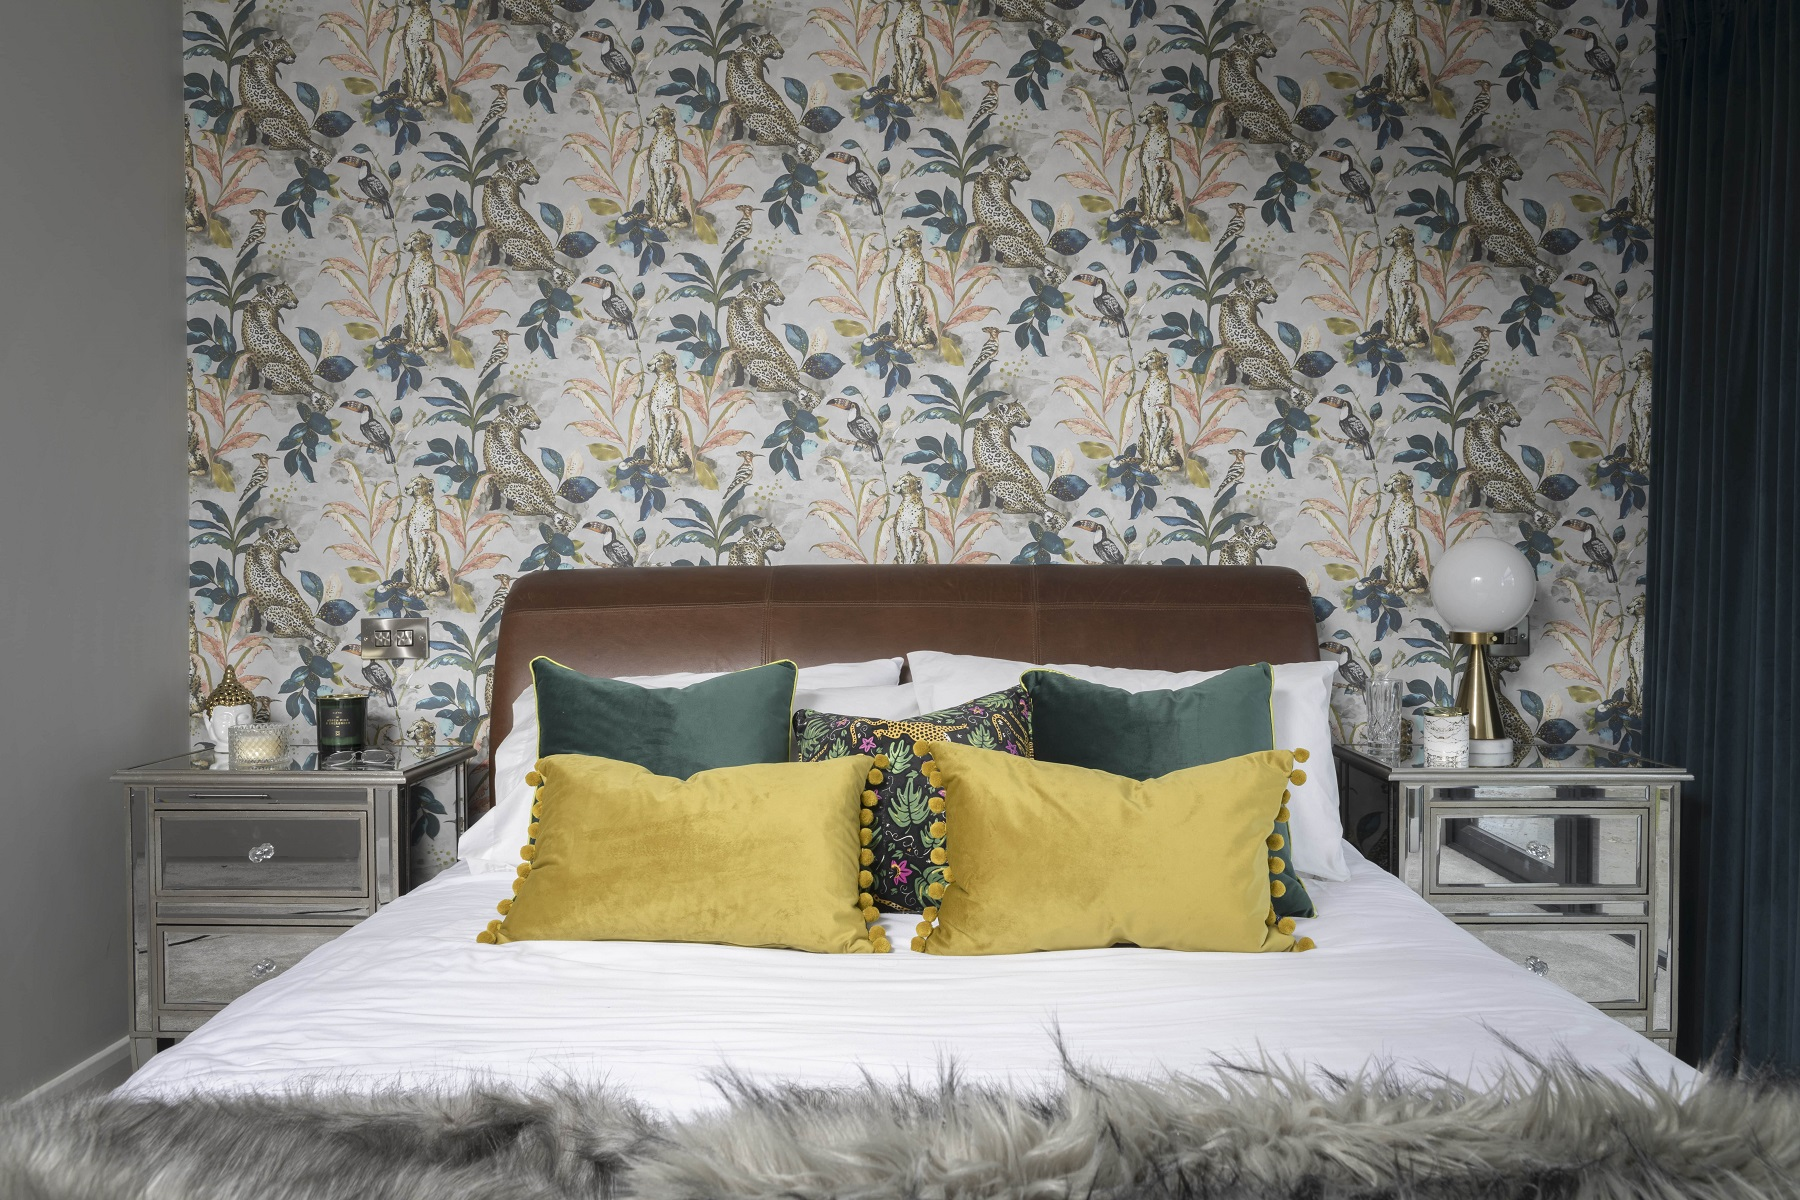 Bedroom with cheetash wallpaper and rich greens